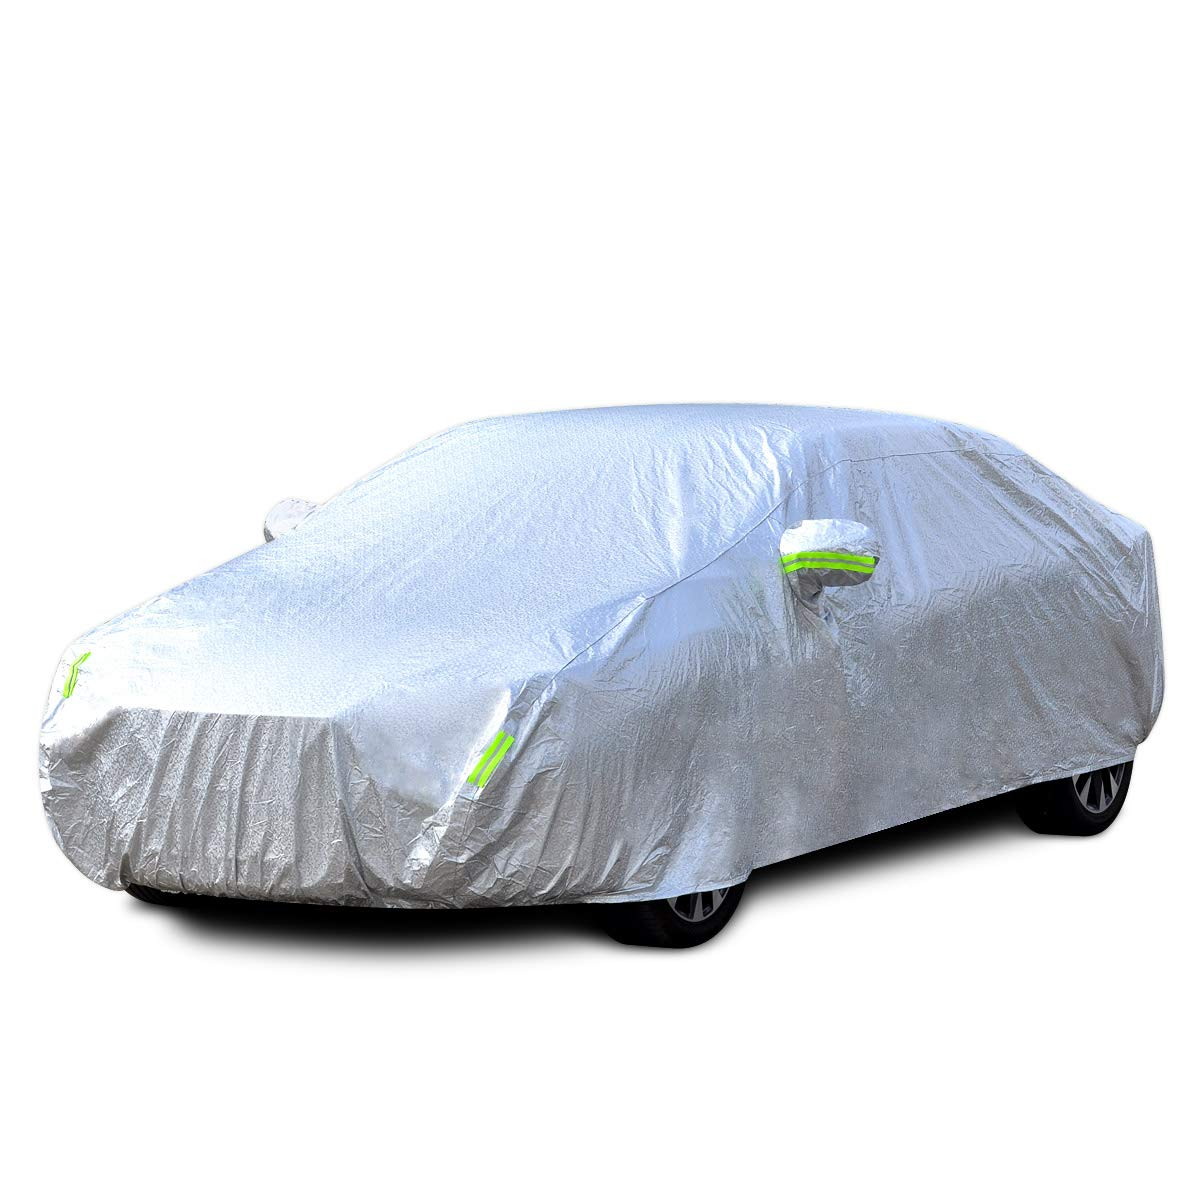 FIAT 500 ABARTH LUXURY FULLY WATERPROOF CAR COVER COTTON LINED